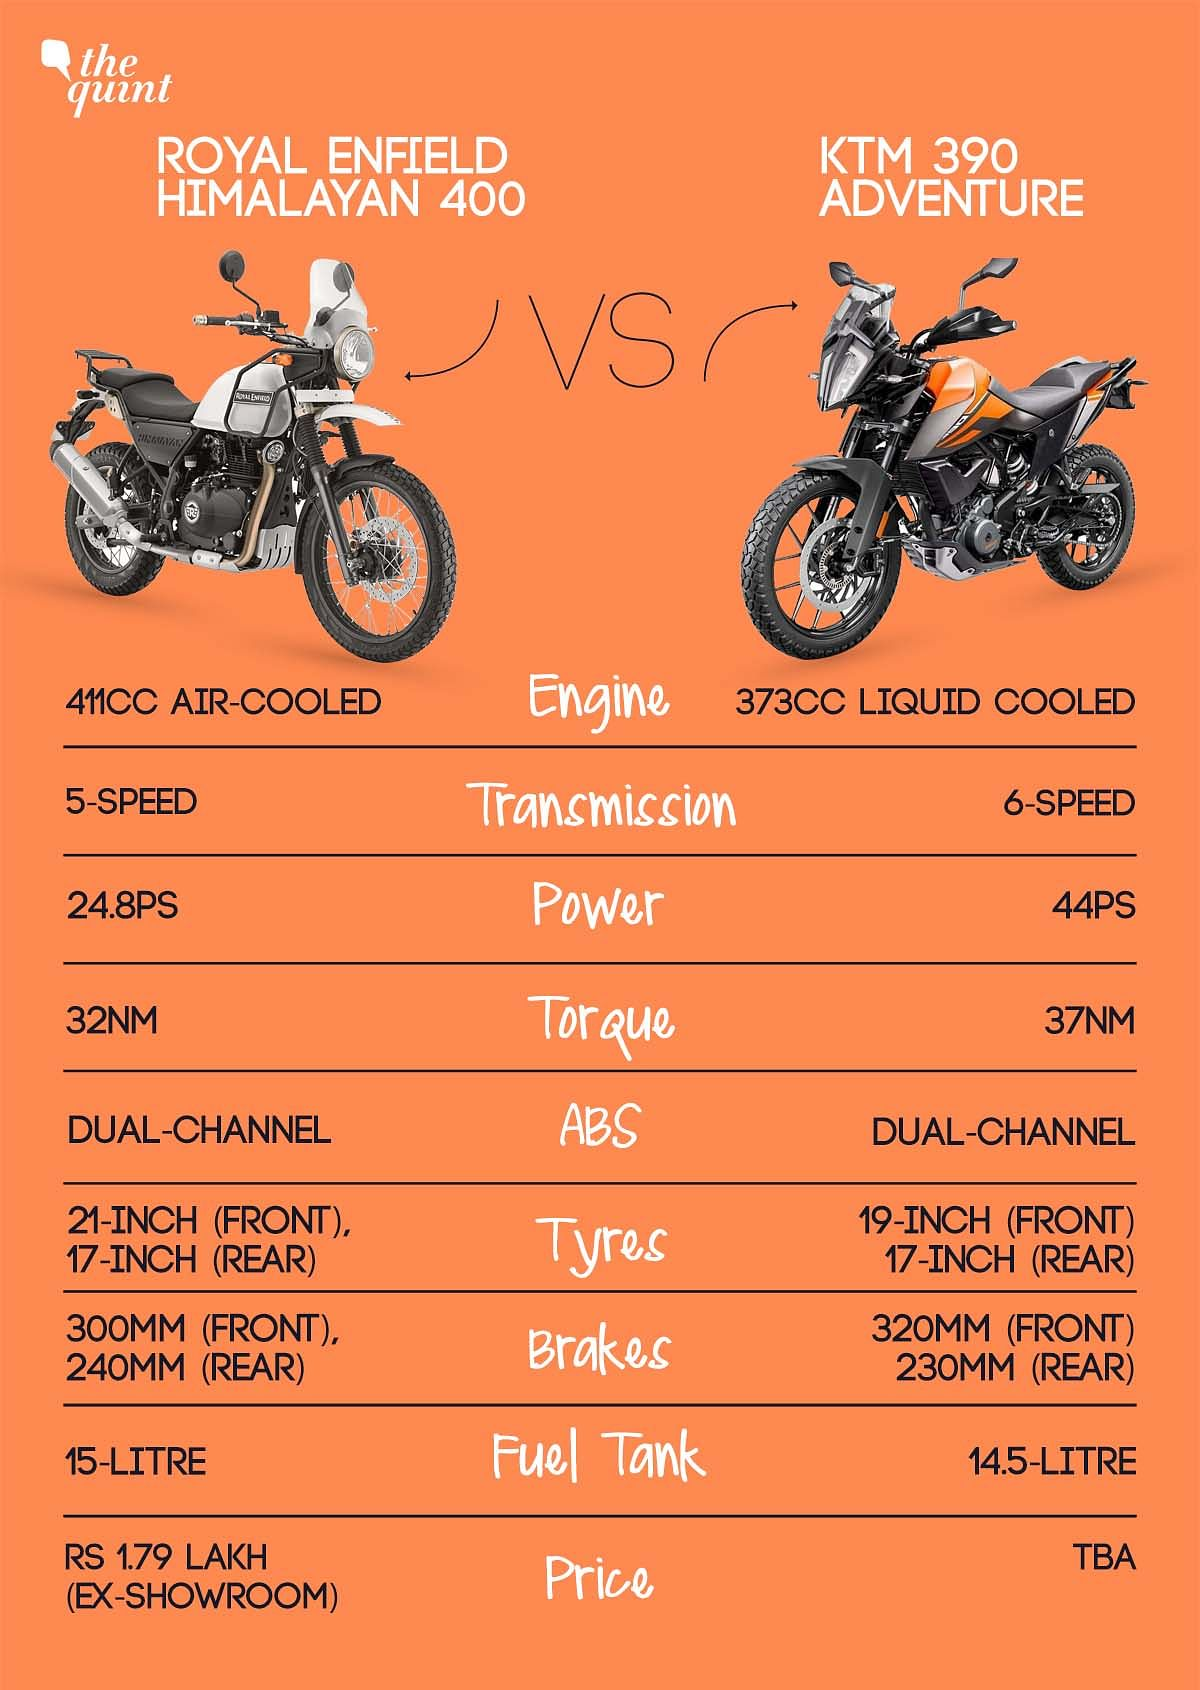 Royal Enfield Himalayan vs KTM 390 Adventure: Which One is Better?